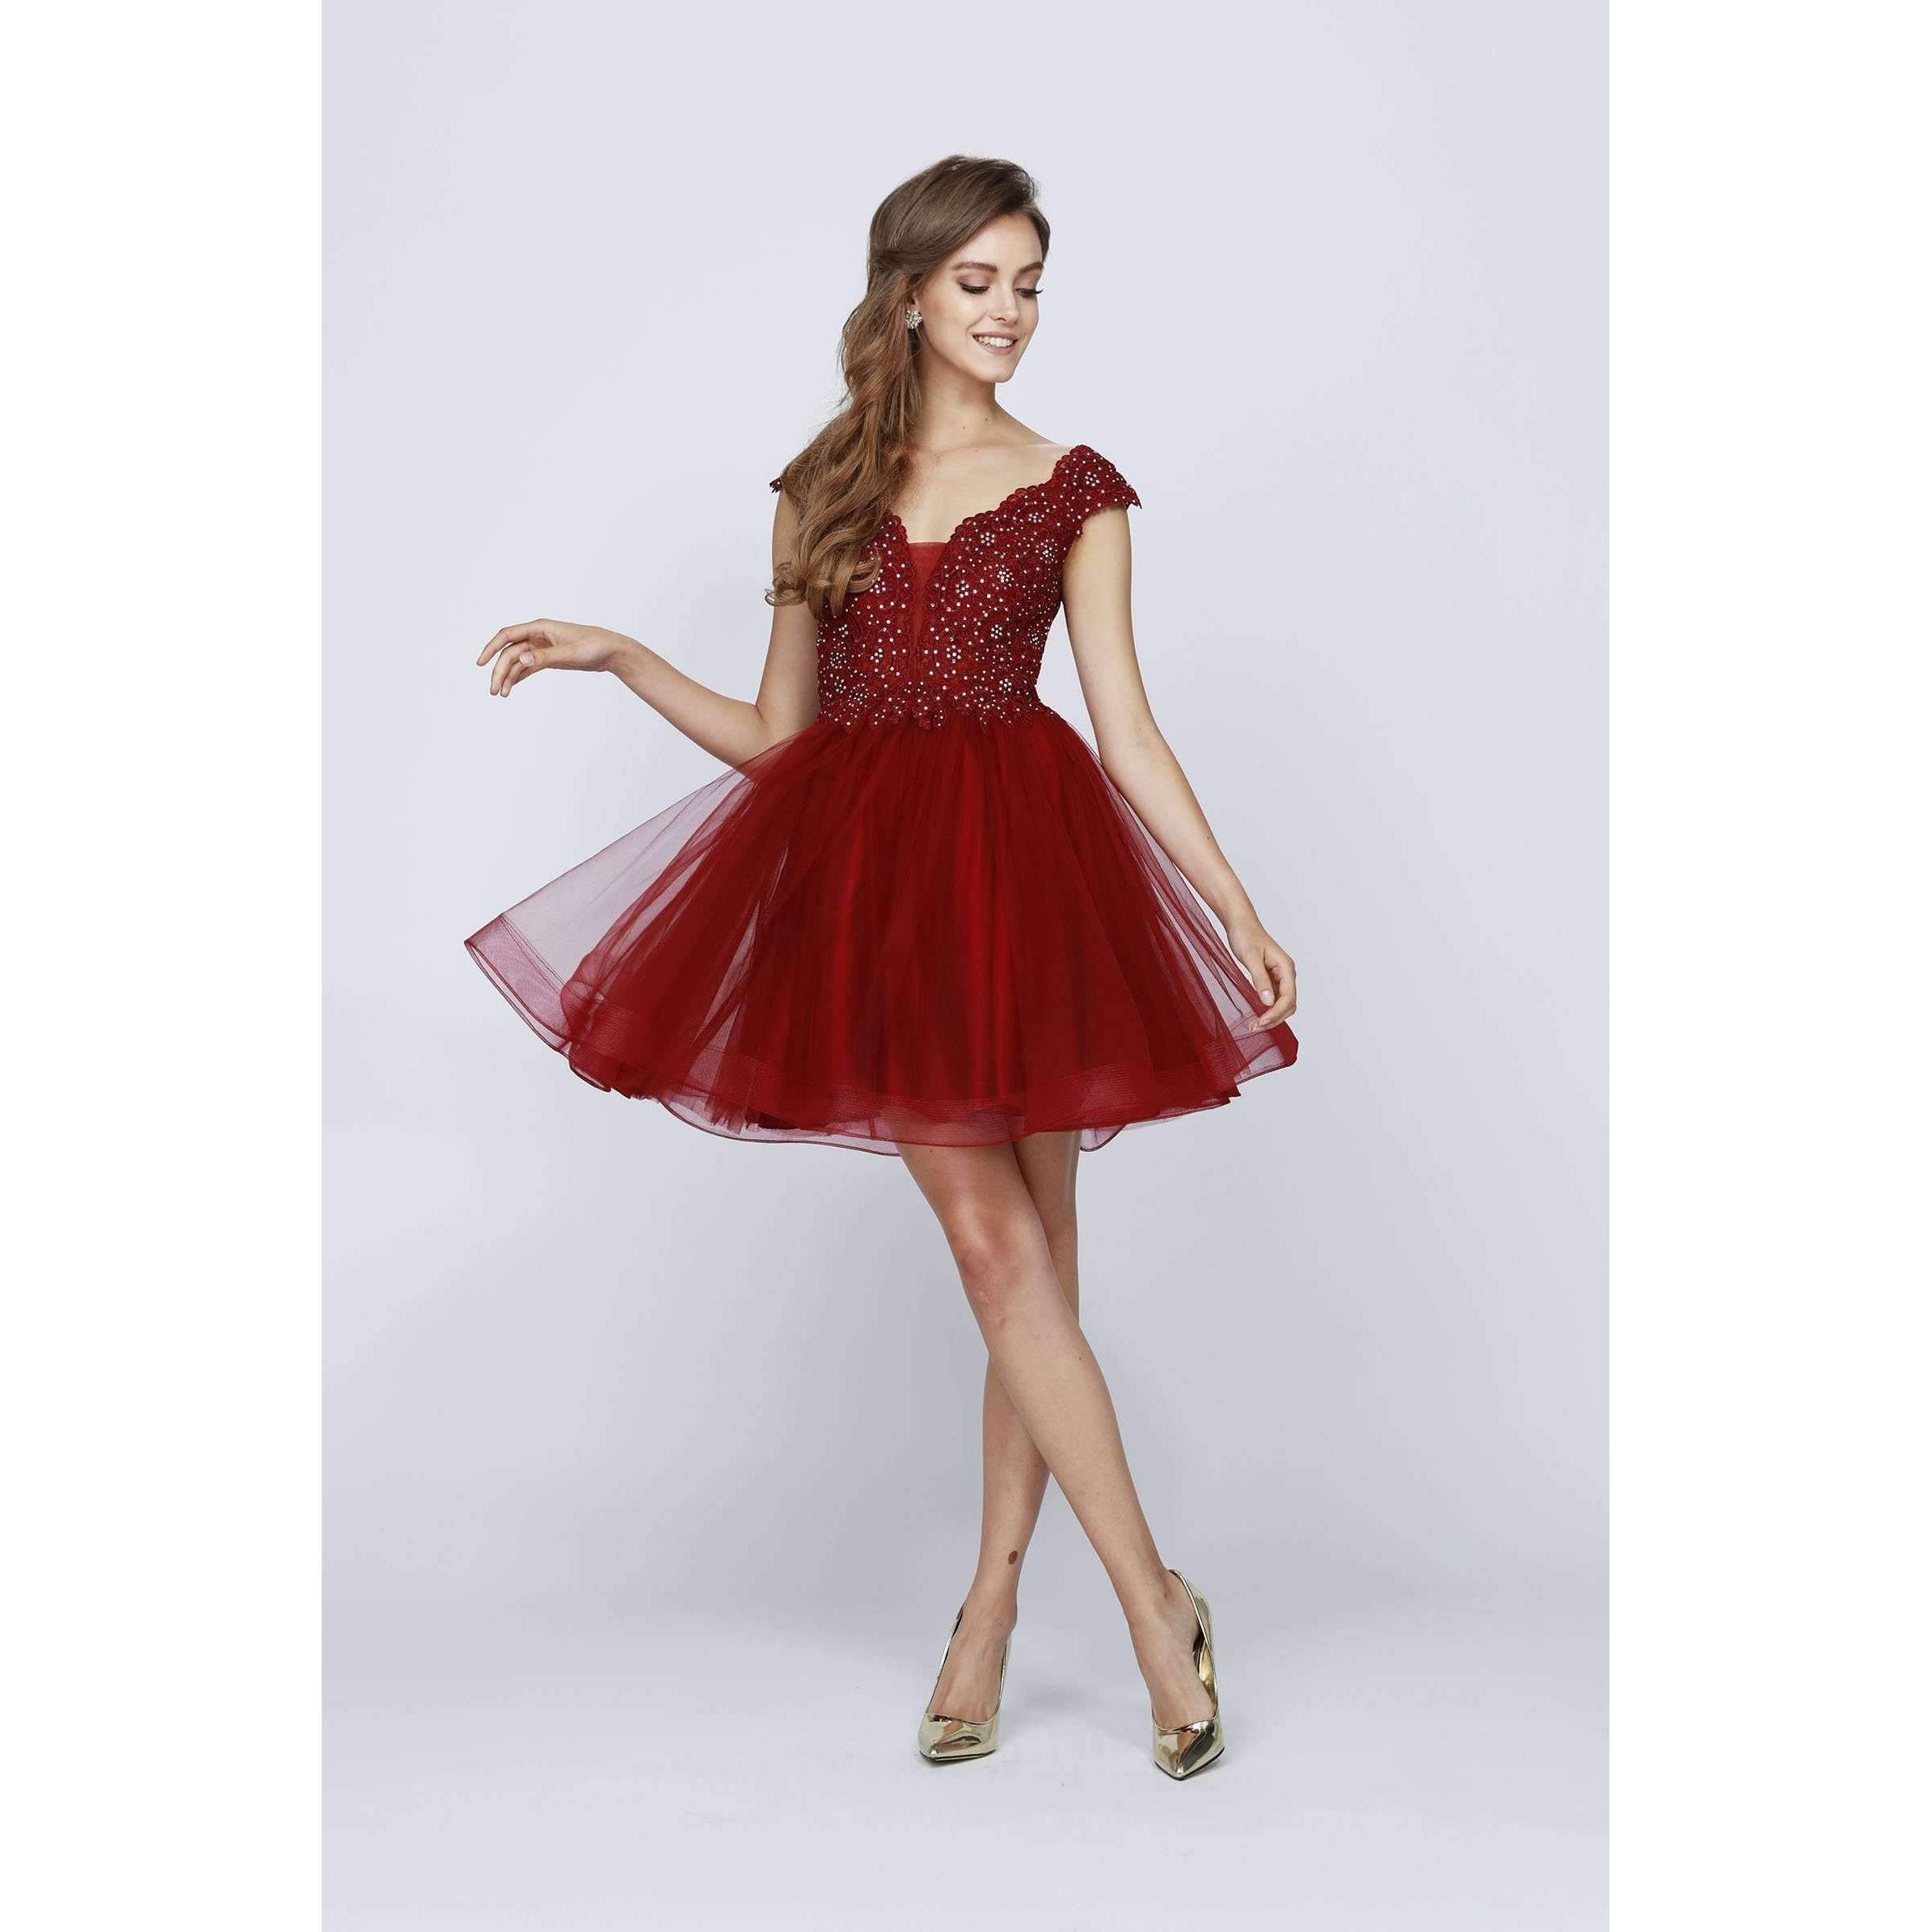 Beaded V Neck Bodice Short Dress 824 - Julietdresses